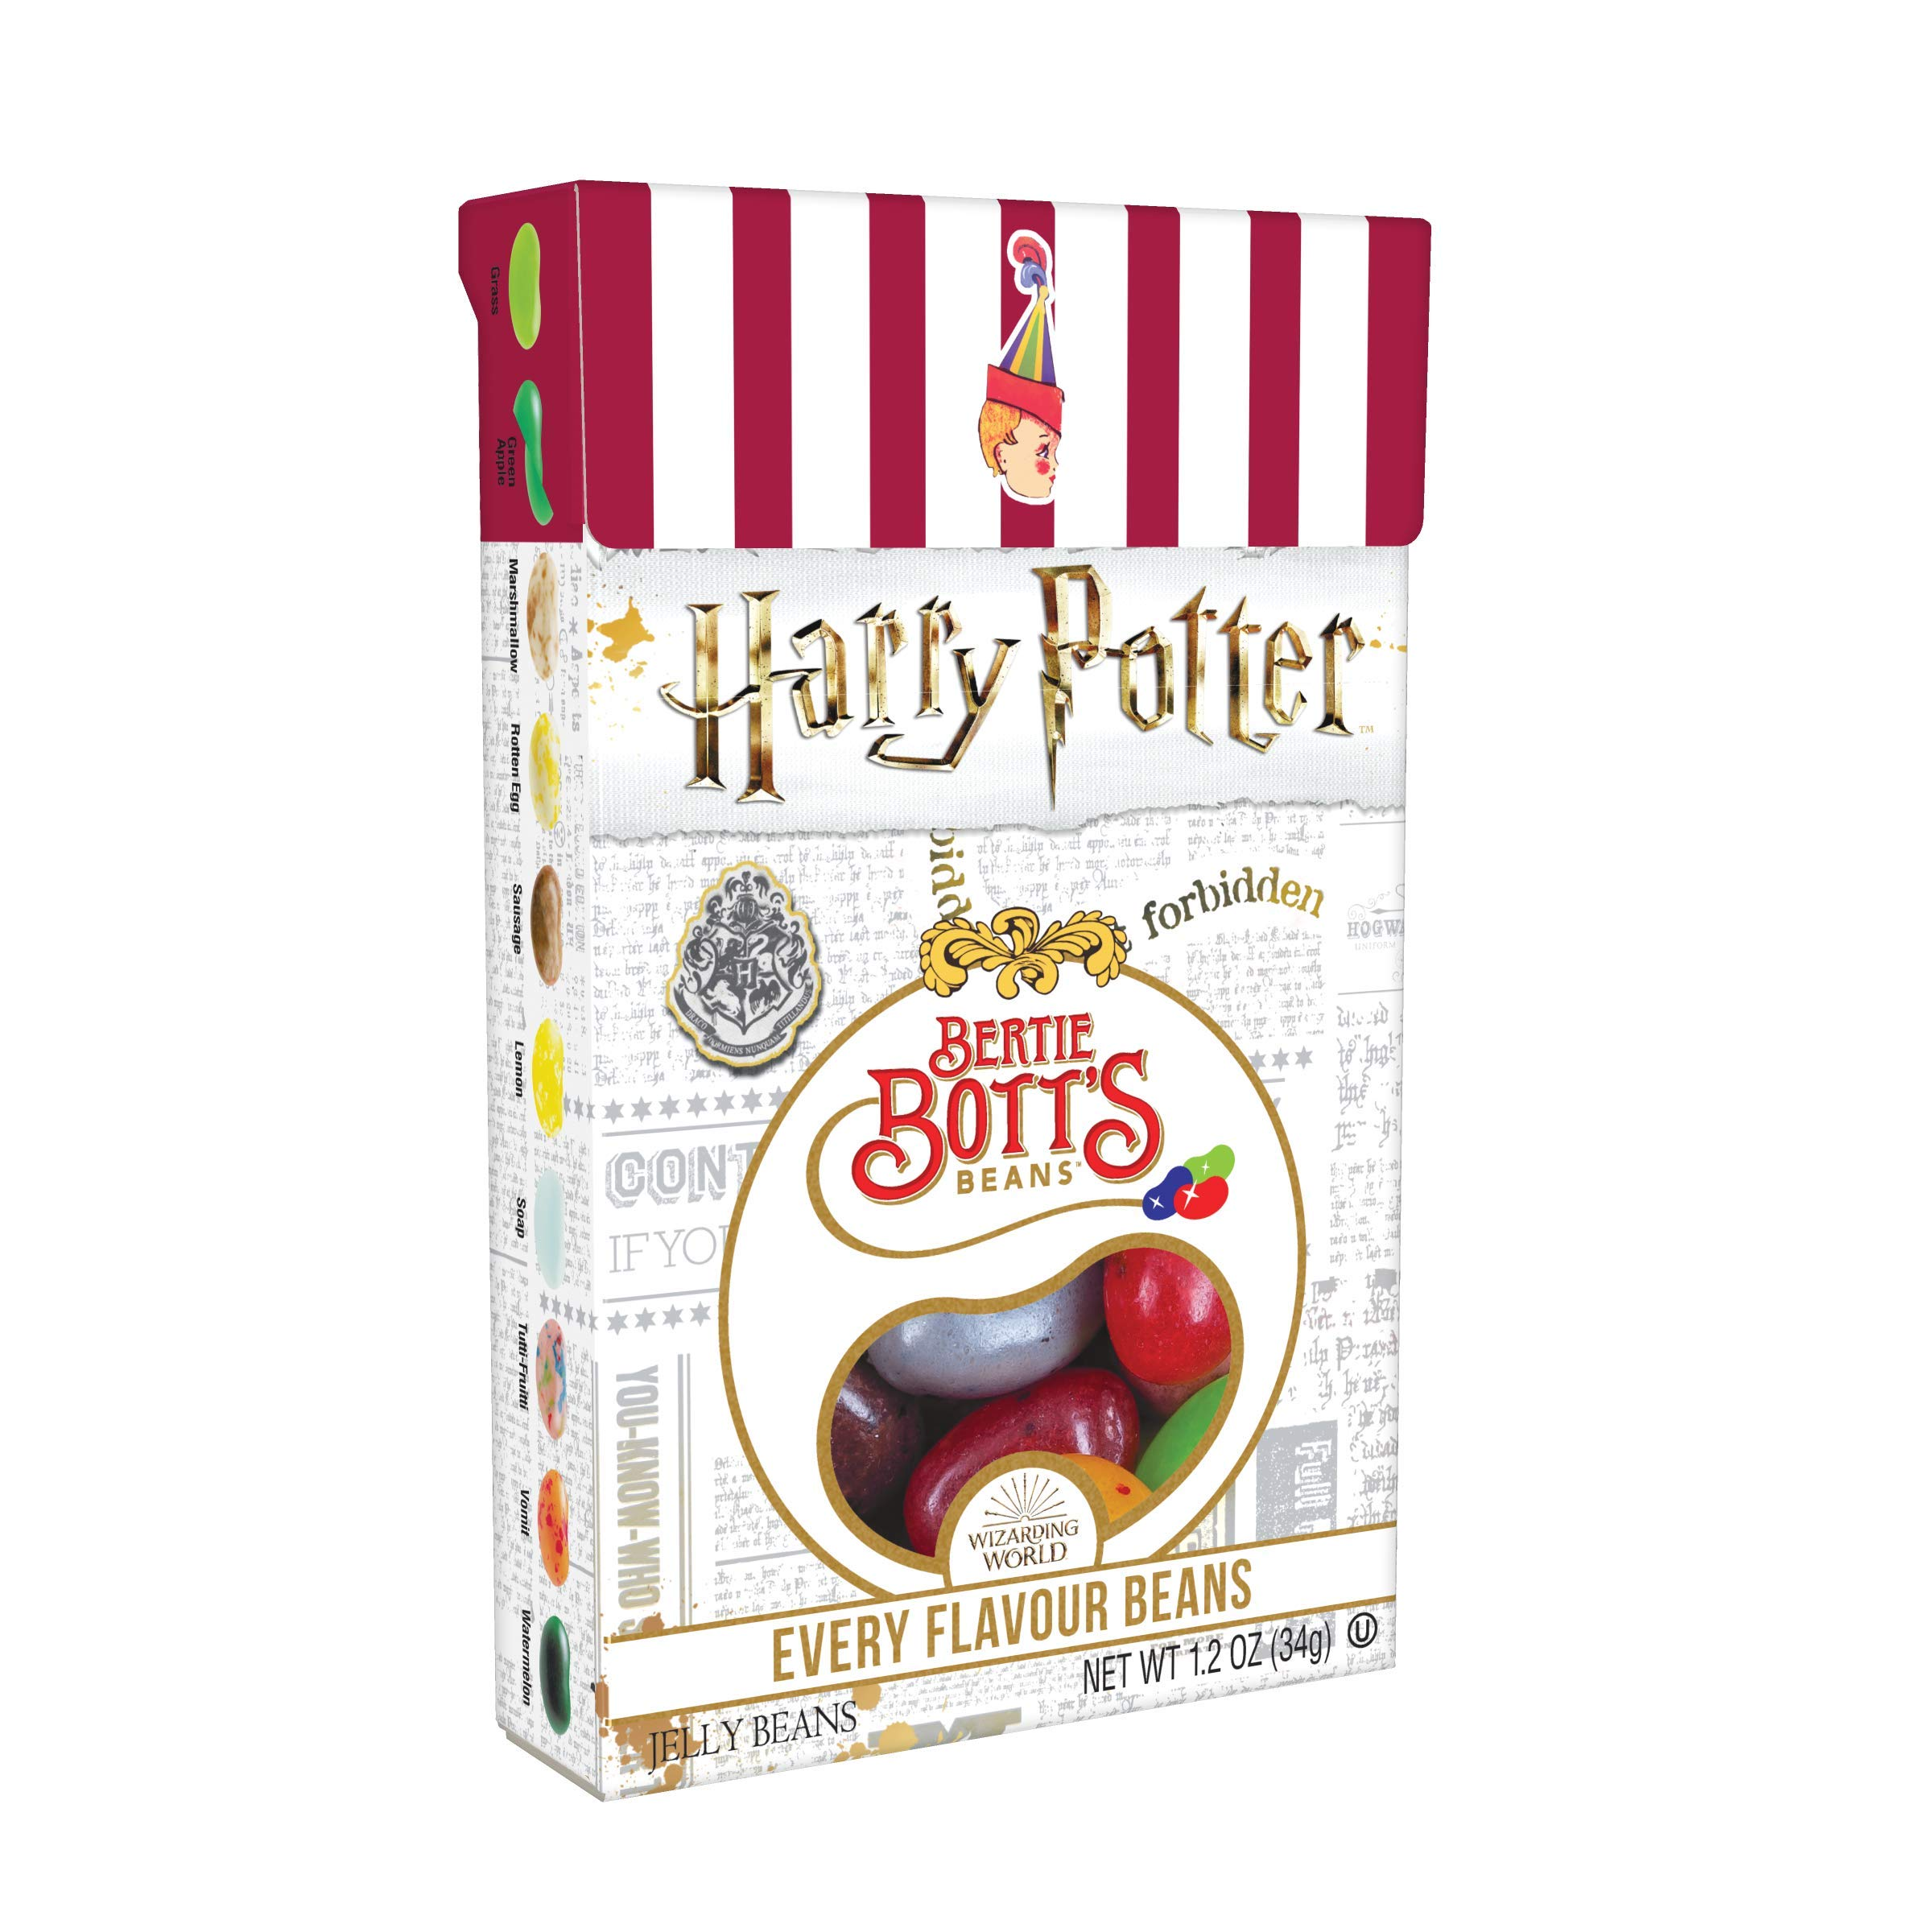 Jelly Belly Harry Potter Bertie Bott's Every Flavor Jelly Beans, 1.2-oz, 24 Pack by Jelly Belly